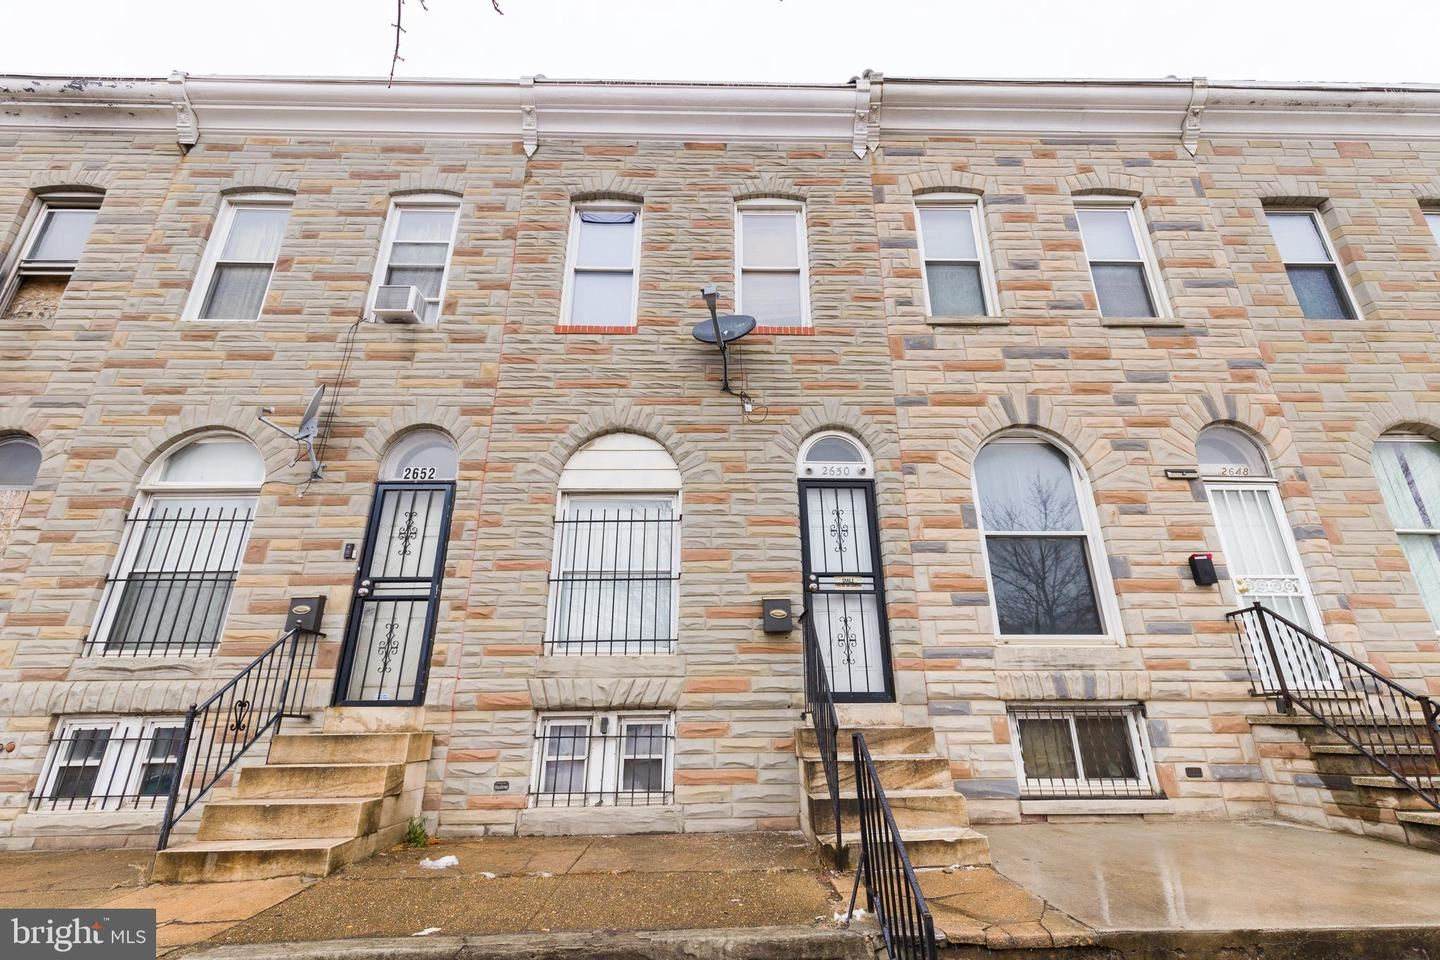 2650 WILKENS AVE, Baltimore, MD 21223 - MLS#: MDBA540286